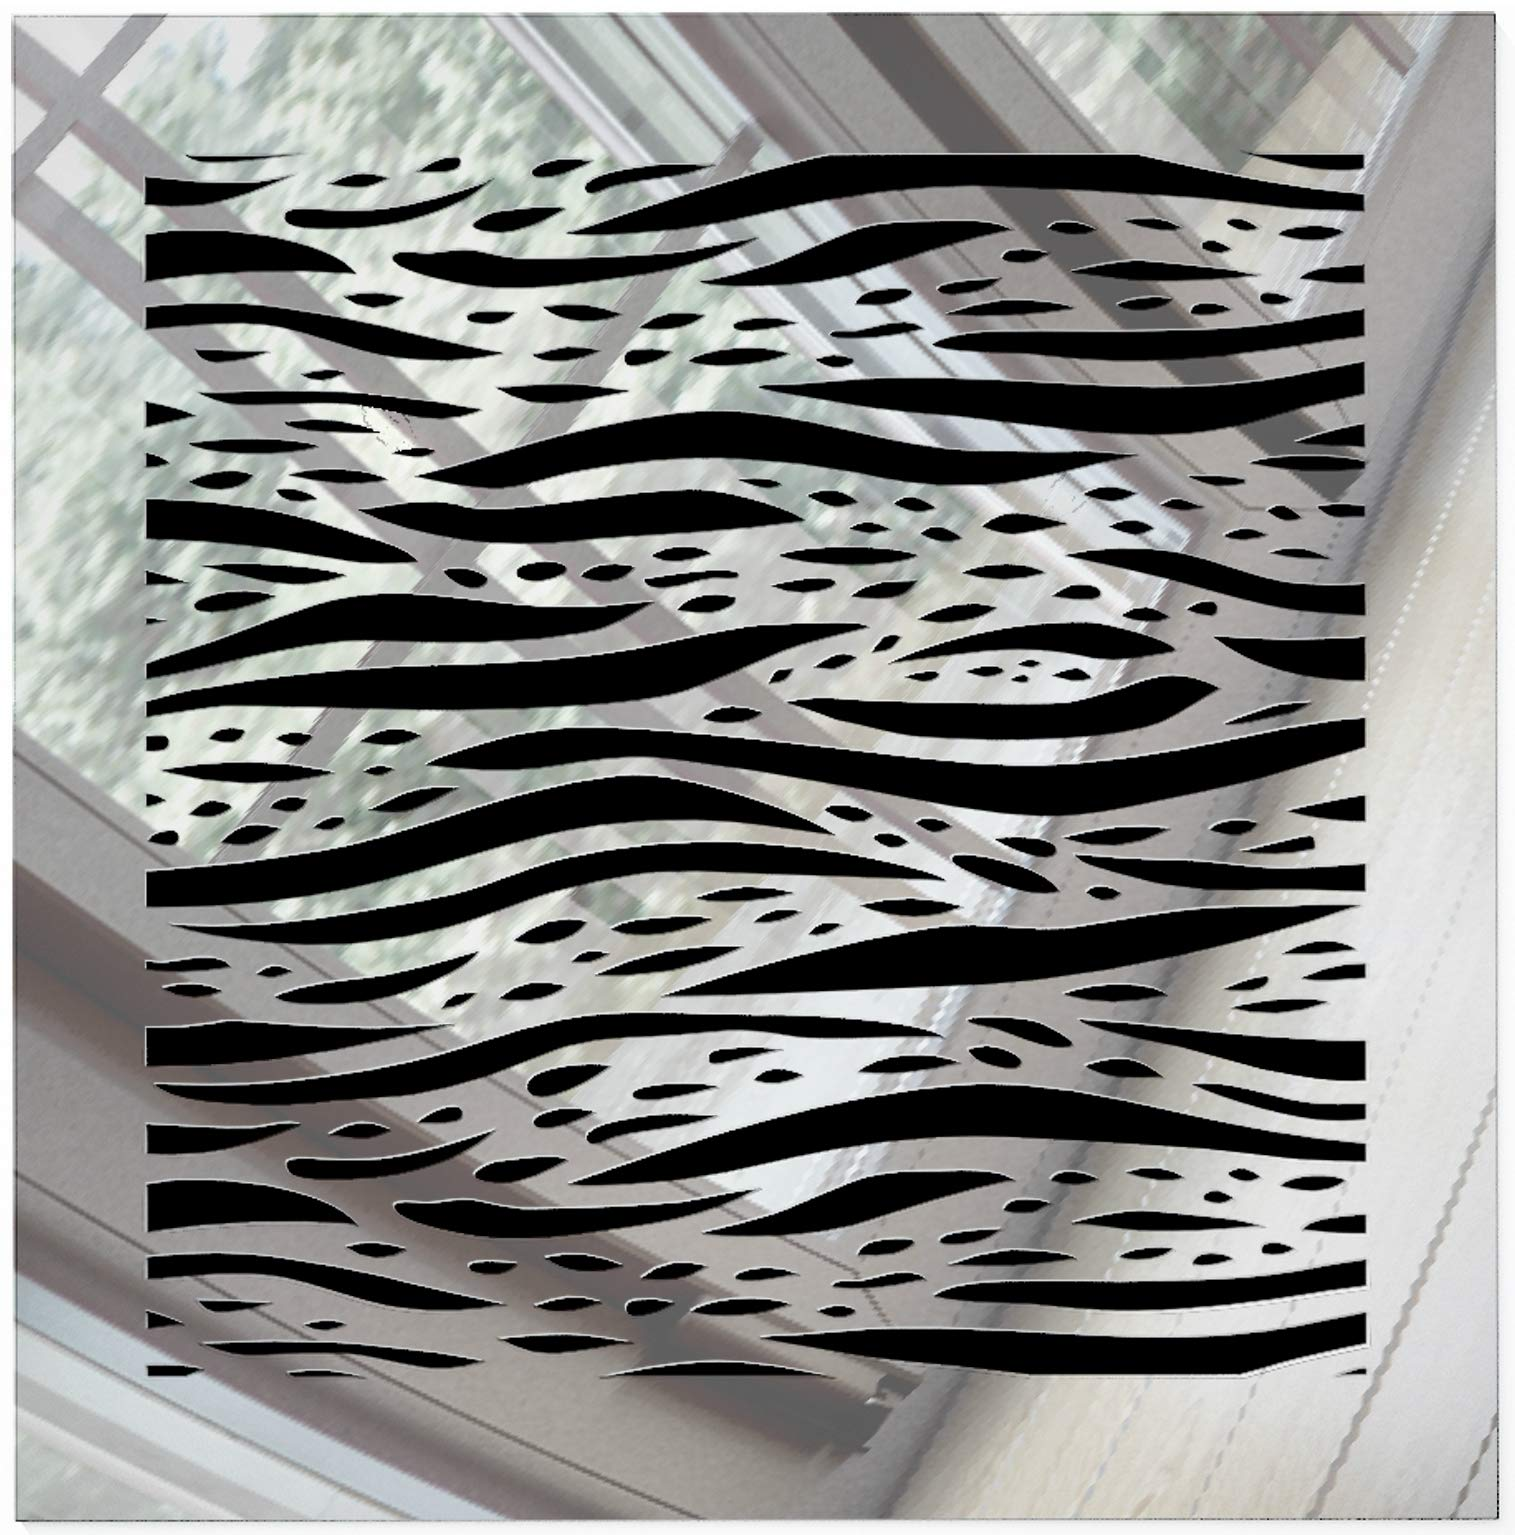 SABA Register Cover Air Vent - Acrylic Fiberglass Grille 14'' x 14'' Duct Opening (17'' x 17'' Overall) Mirror Finish Decorative Cover for Walls and Ceilings, not for Floor use, Waves